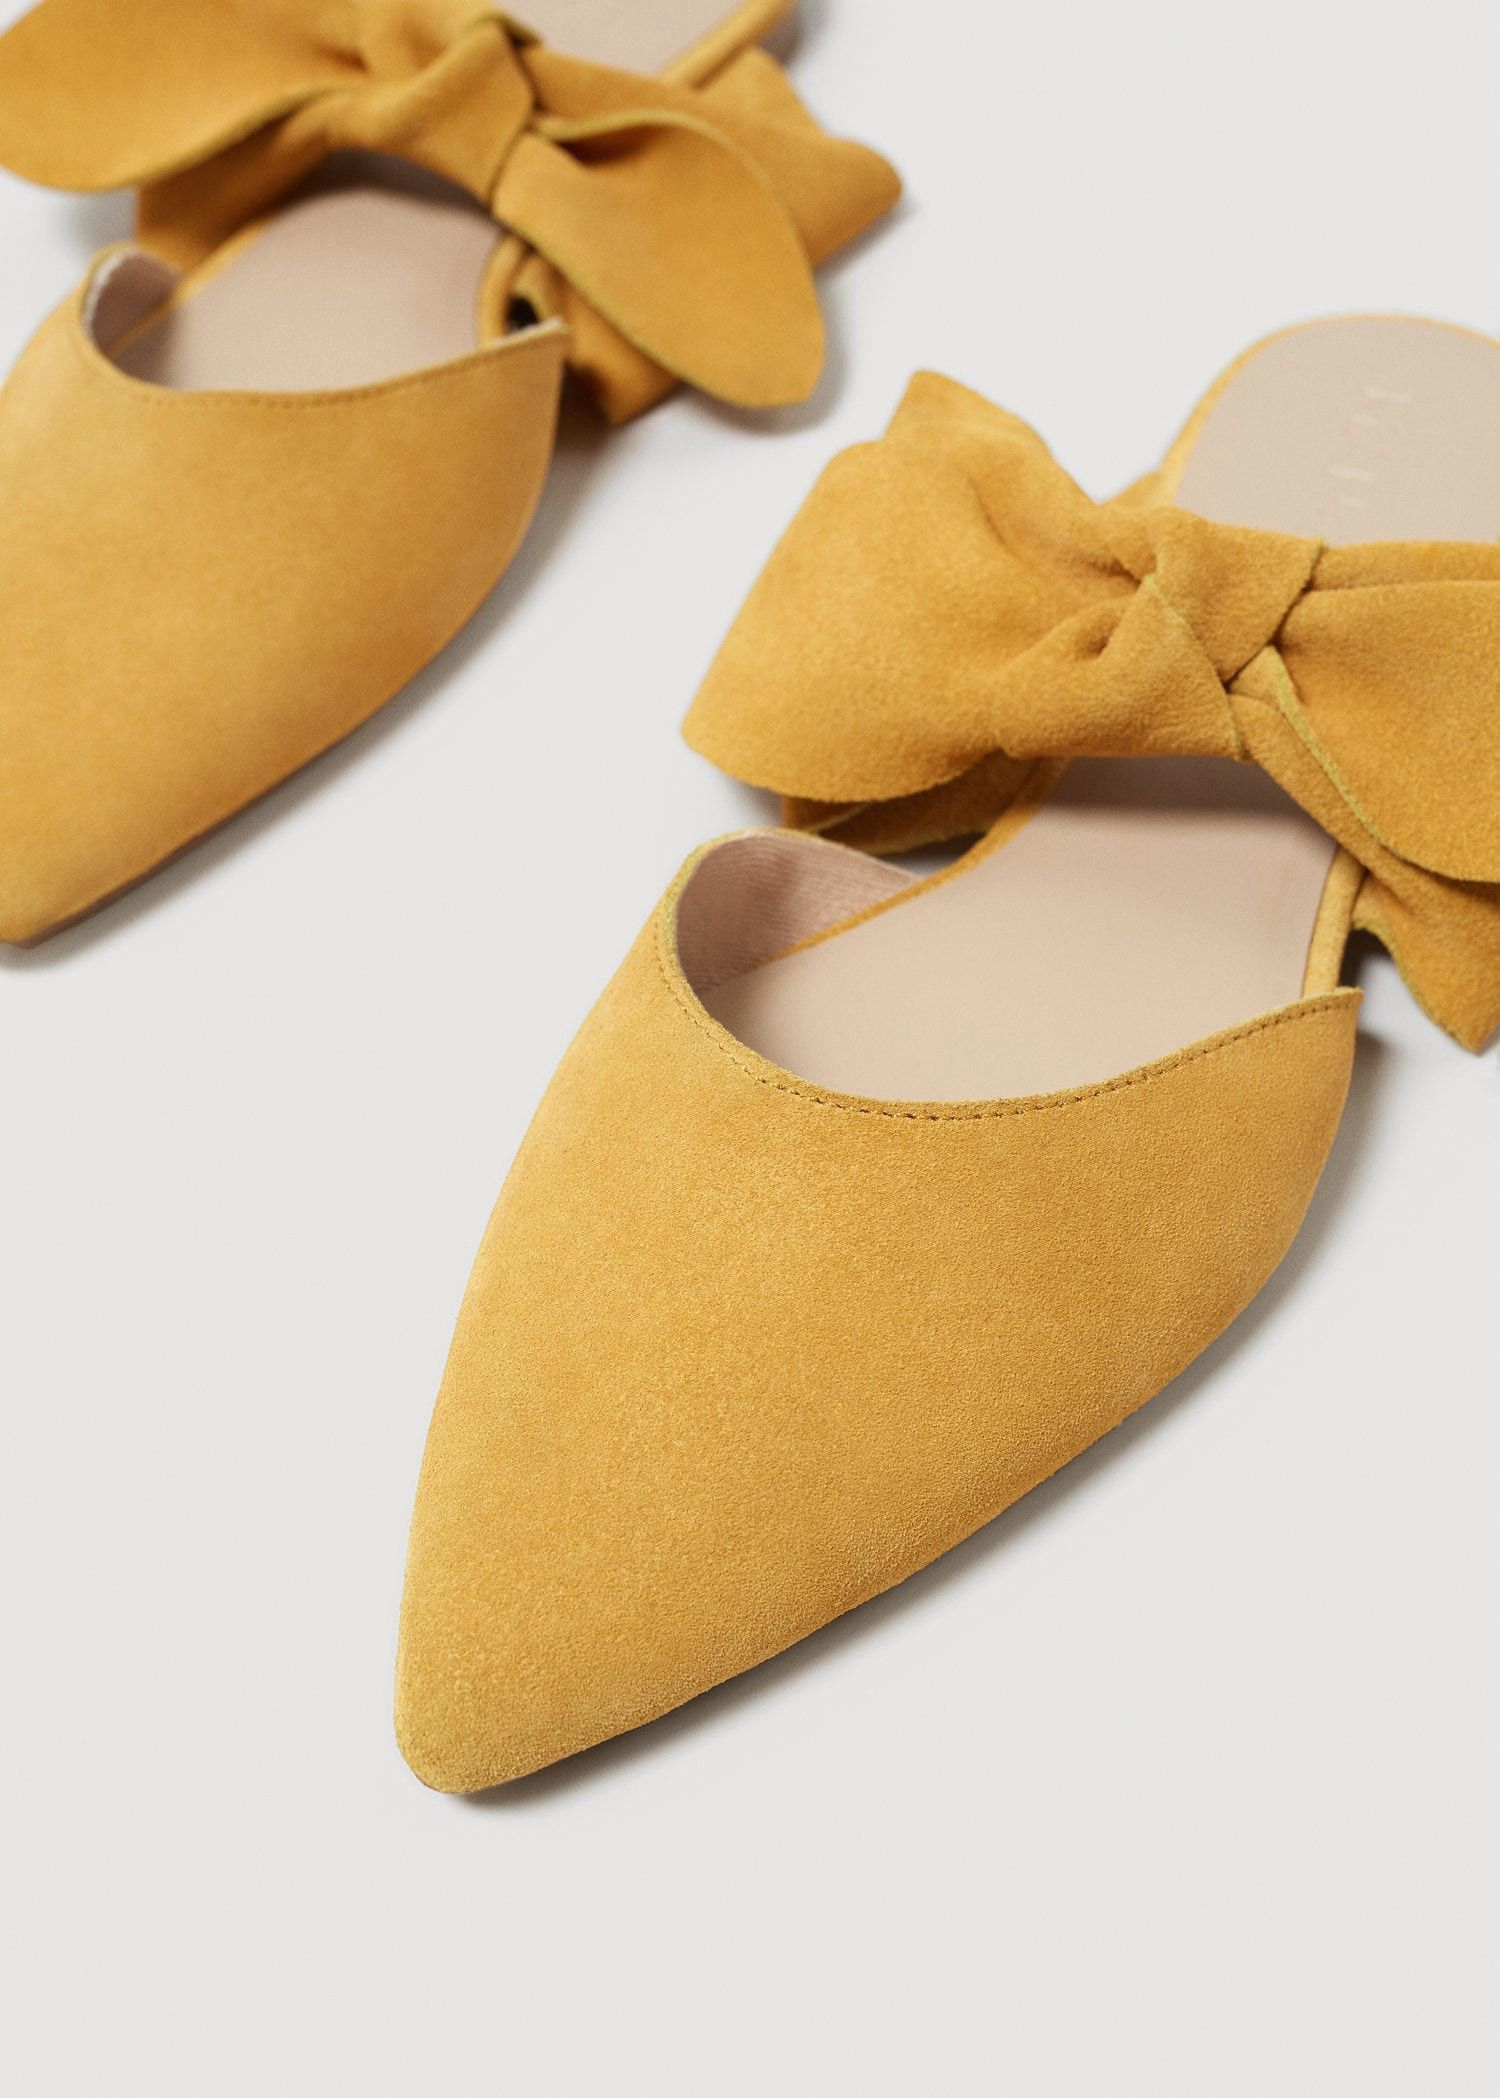 9eefca7fbf730 Mango Bow Leather Shoes - Women   7½   Products in 2019   Shoes ...